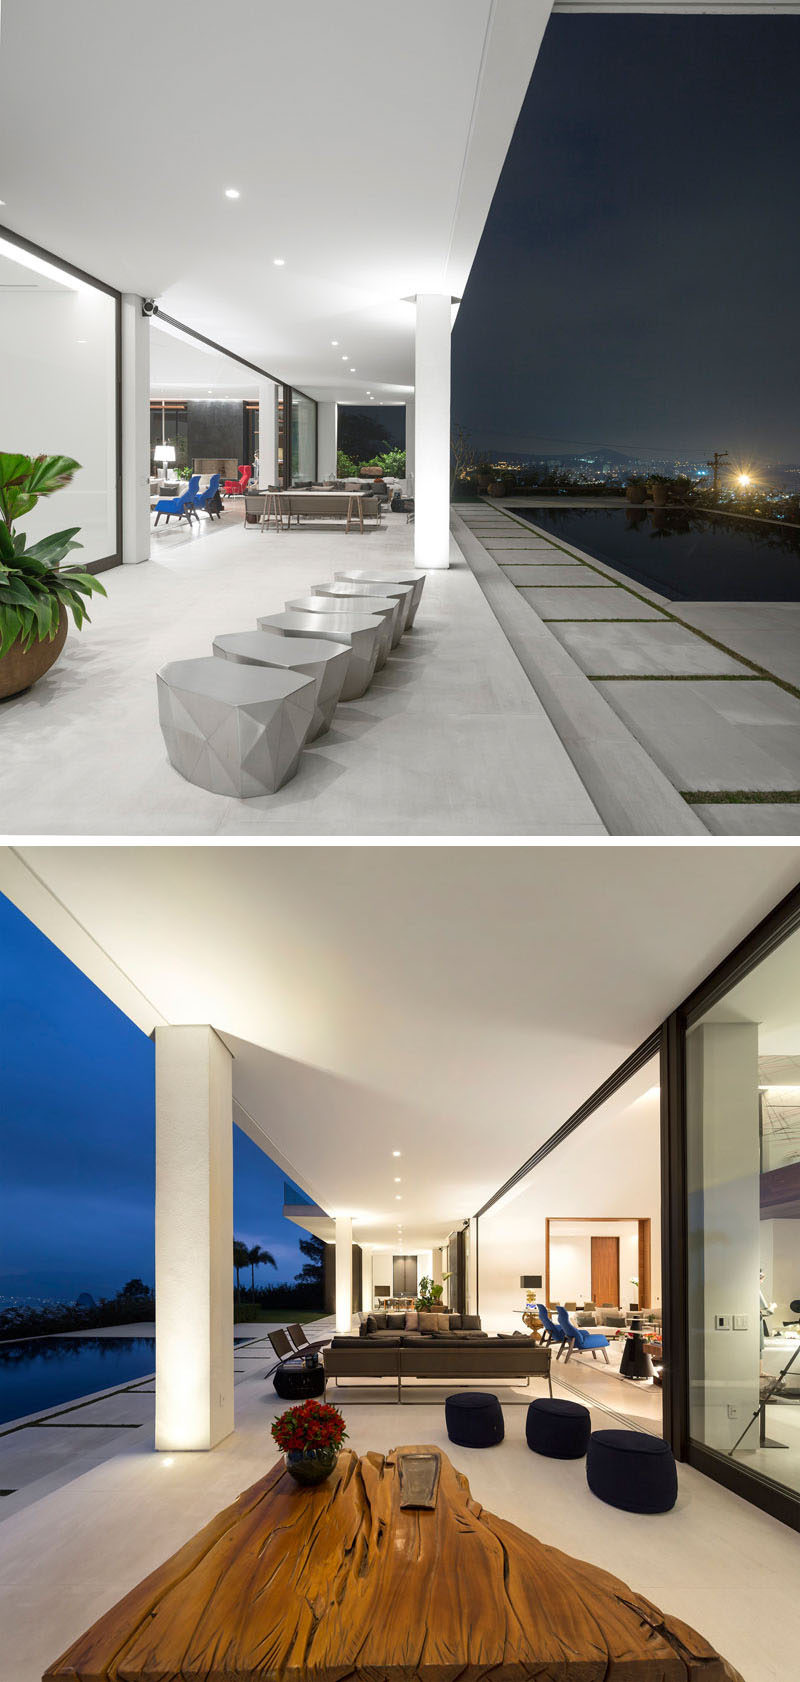 This outdoor living area next to the pool, has been broken up into various sitting areas.